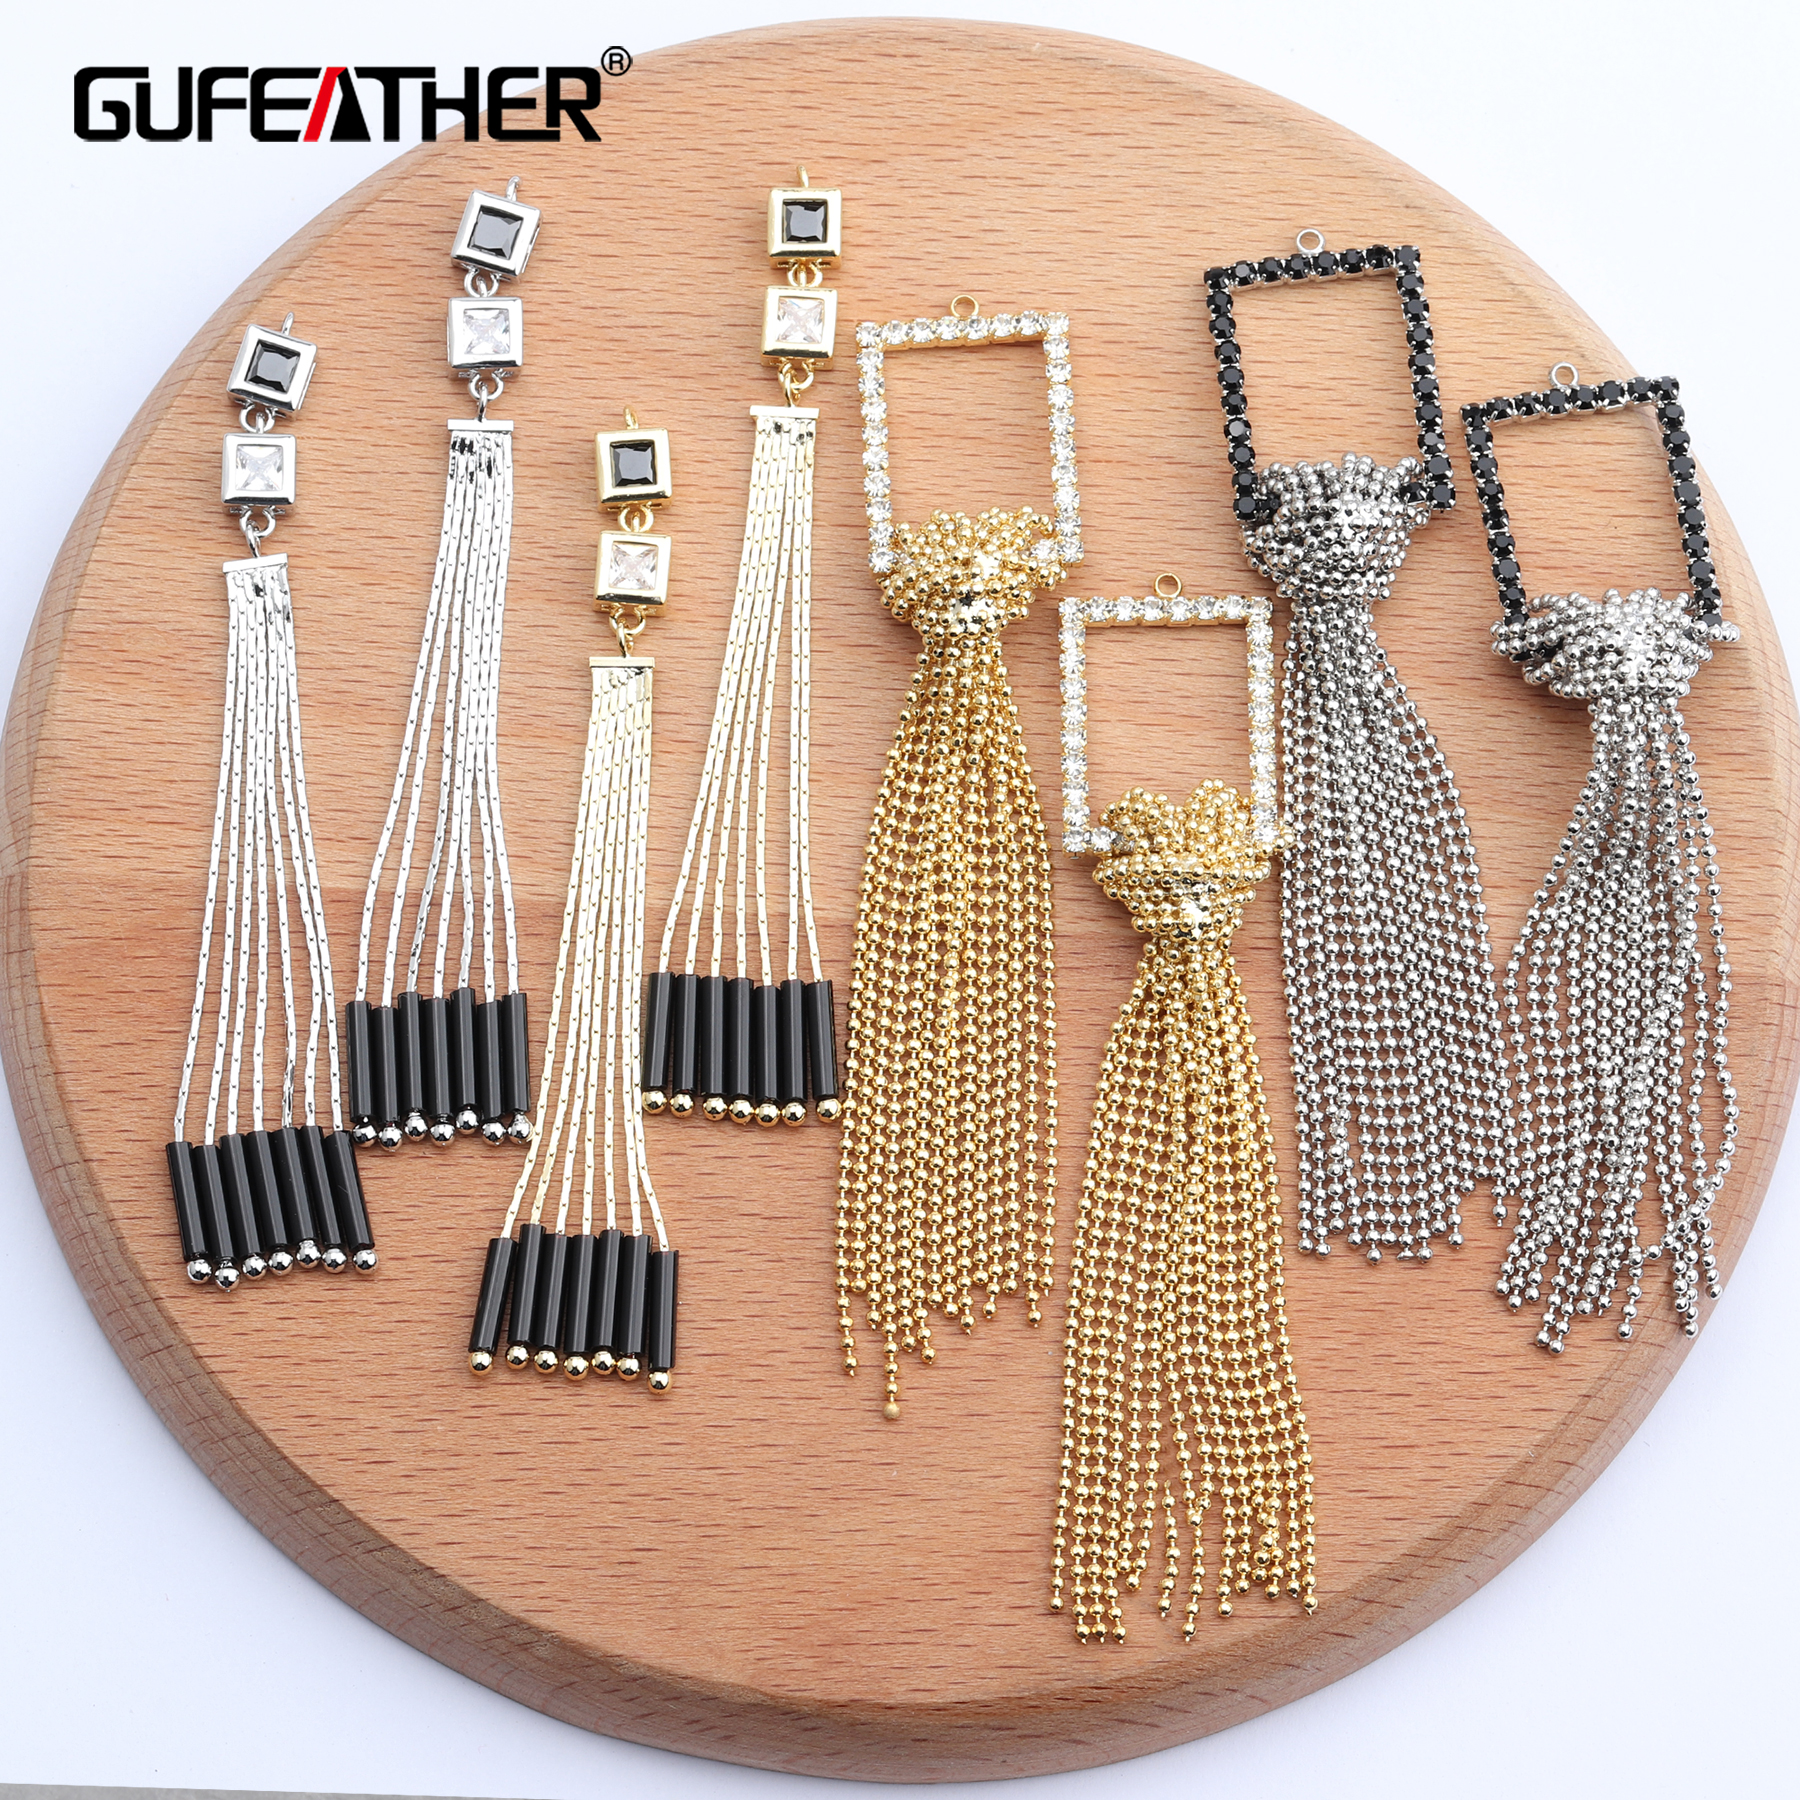 GUFEATHER M630,jewelry Making,jewelry Findings,diy Tassel Pendant,hand Made,18k Gold Plated,stable Quality,diy Earrings,4pcs/lot